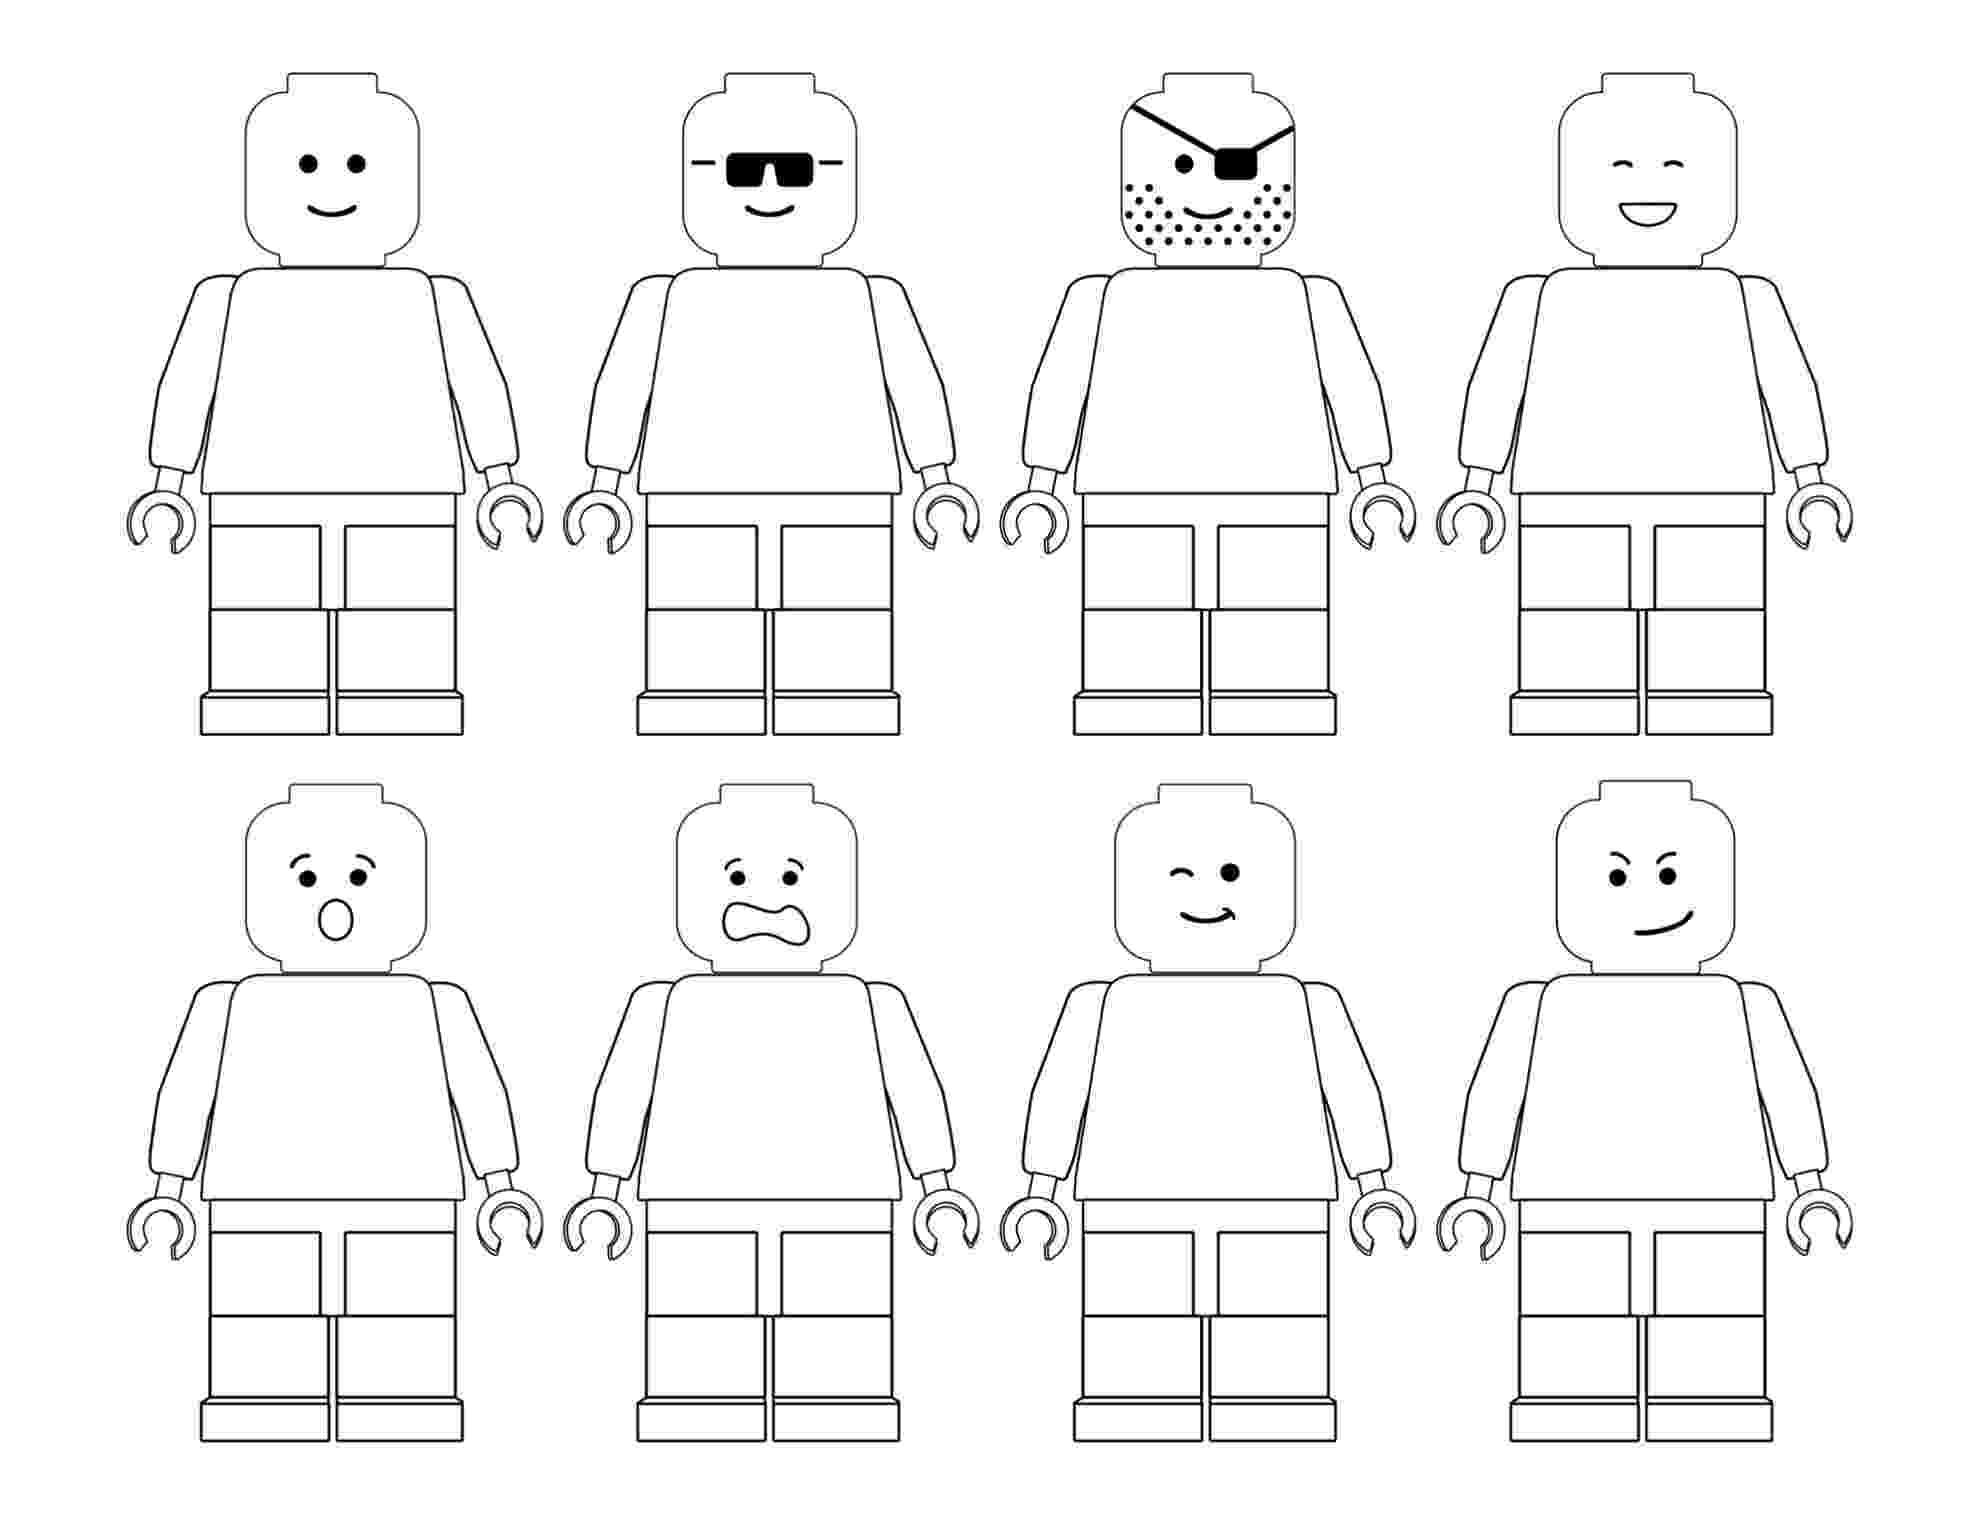 lego minifigures coloring pages lego minifigures coloring pages coloring pages to coloring pages lego minifigures